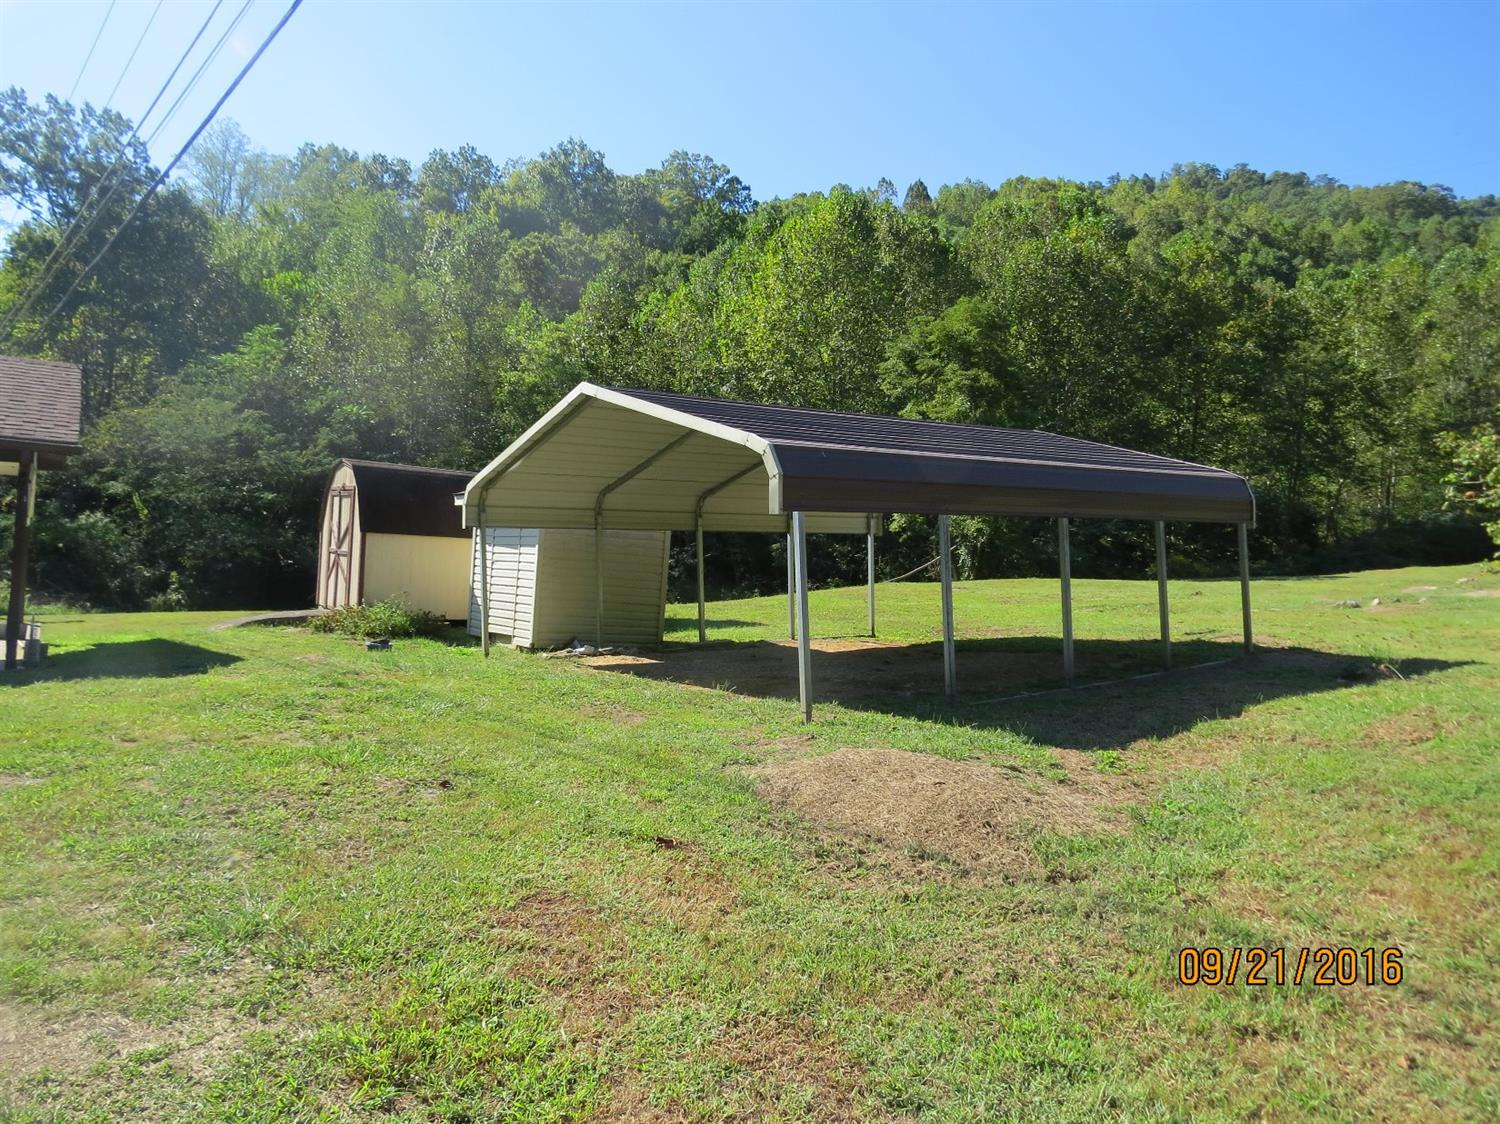 391 AGES CREEK RD, AGES BROOKSIDE, KY 40801  Photo 2